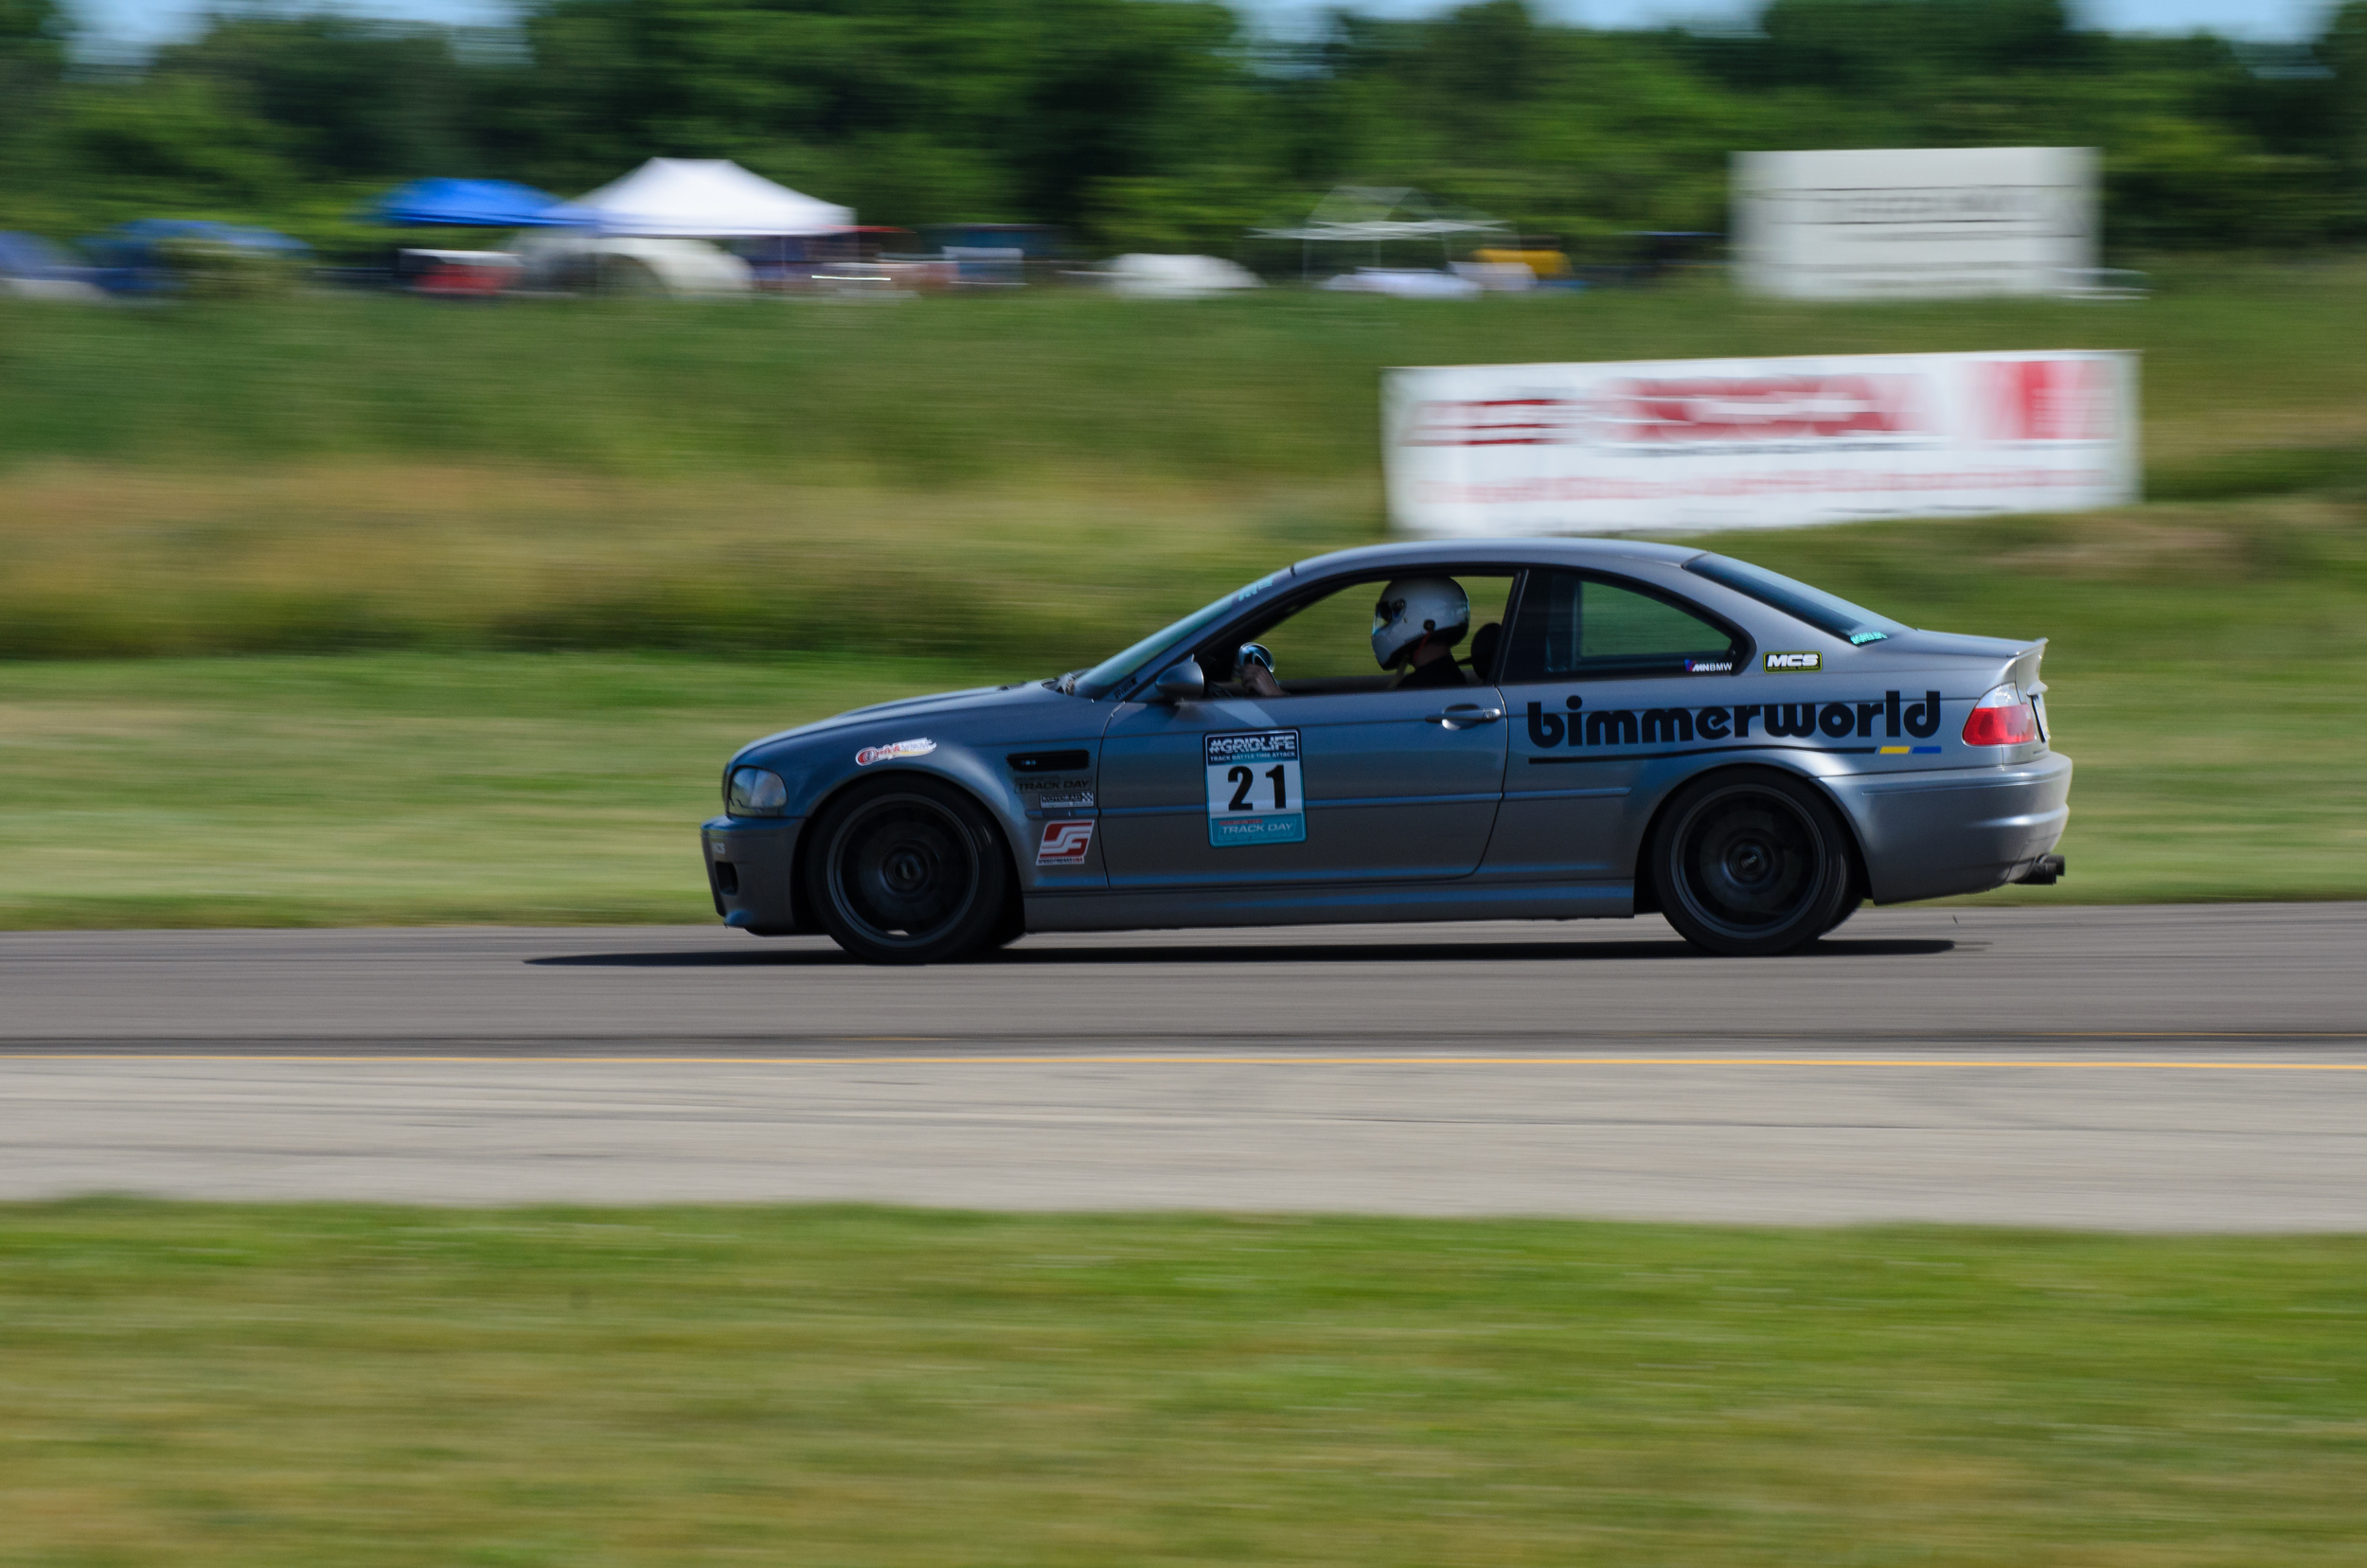 Yet another  RS Motors  car taking home a top 5 finish in Street Mod. This one is not an evo though, this M3 is piloted by Matt and put down a blazing time of 1:41.898.